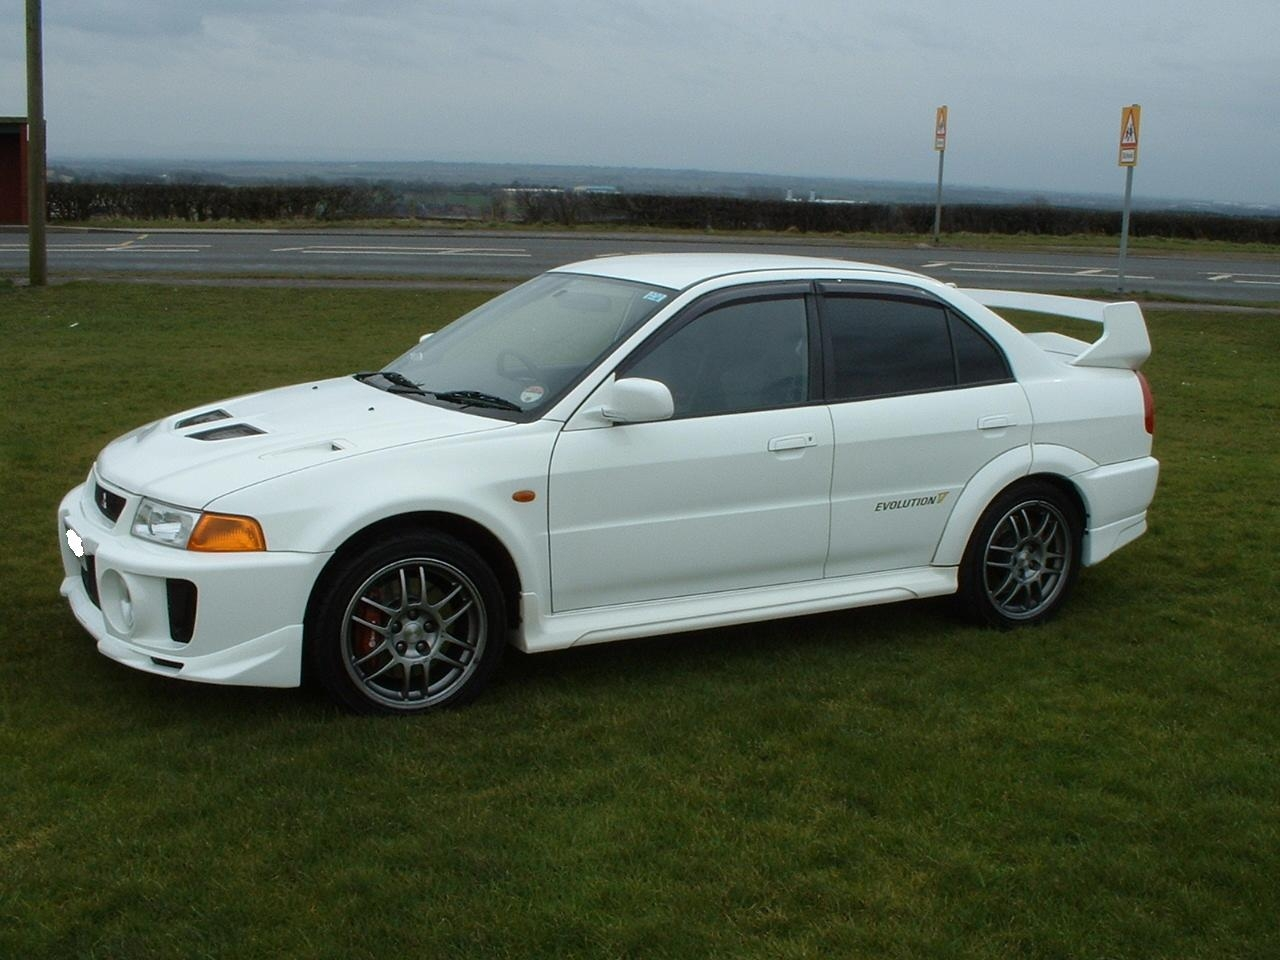 Mitsubishi Lancer Evolution IV 1996 - 1998 Sedan #6